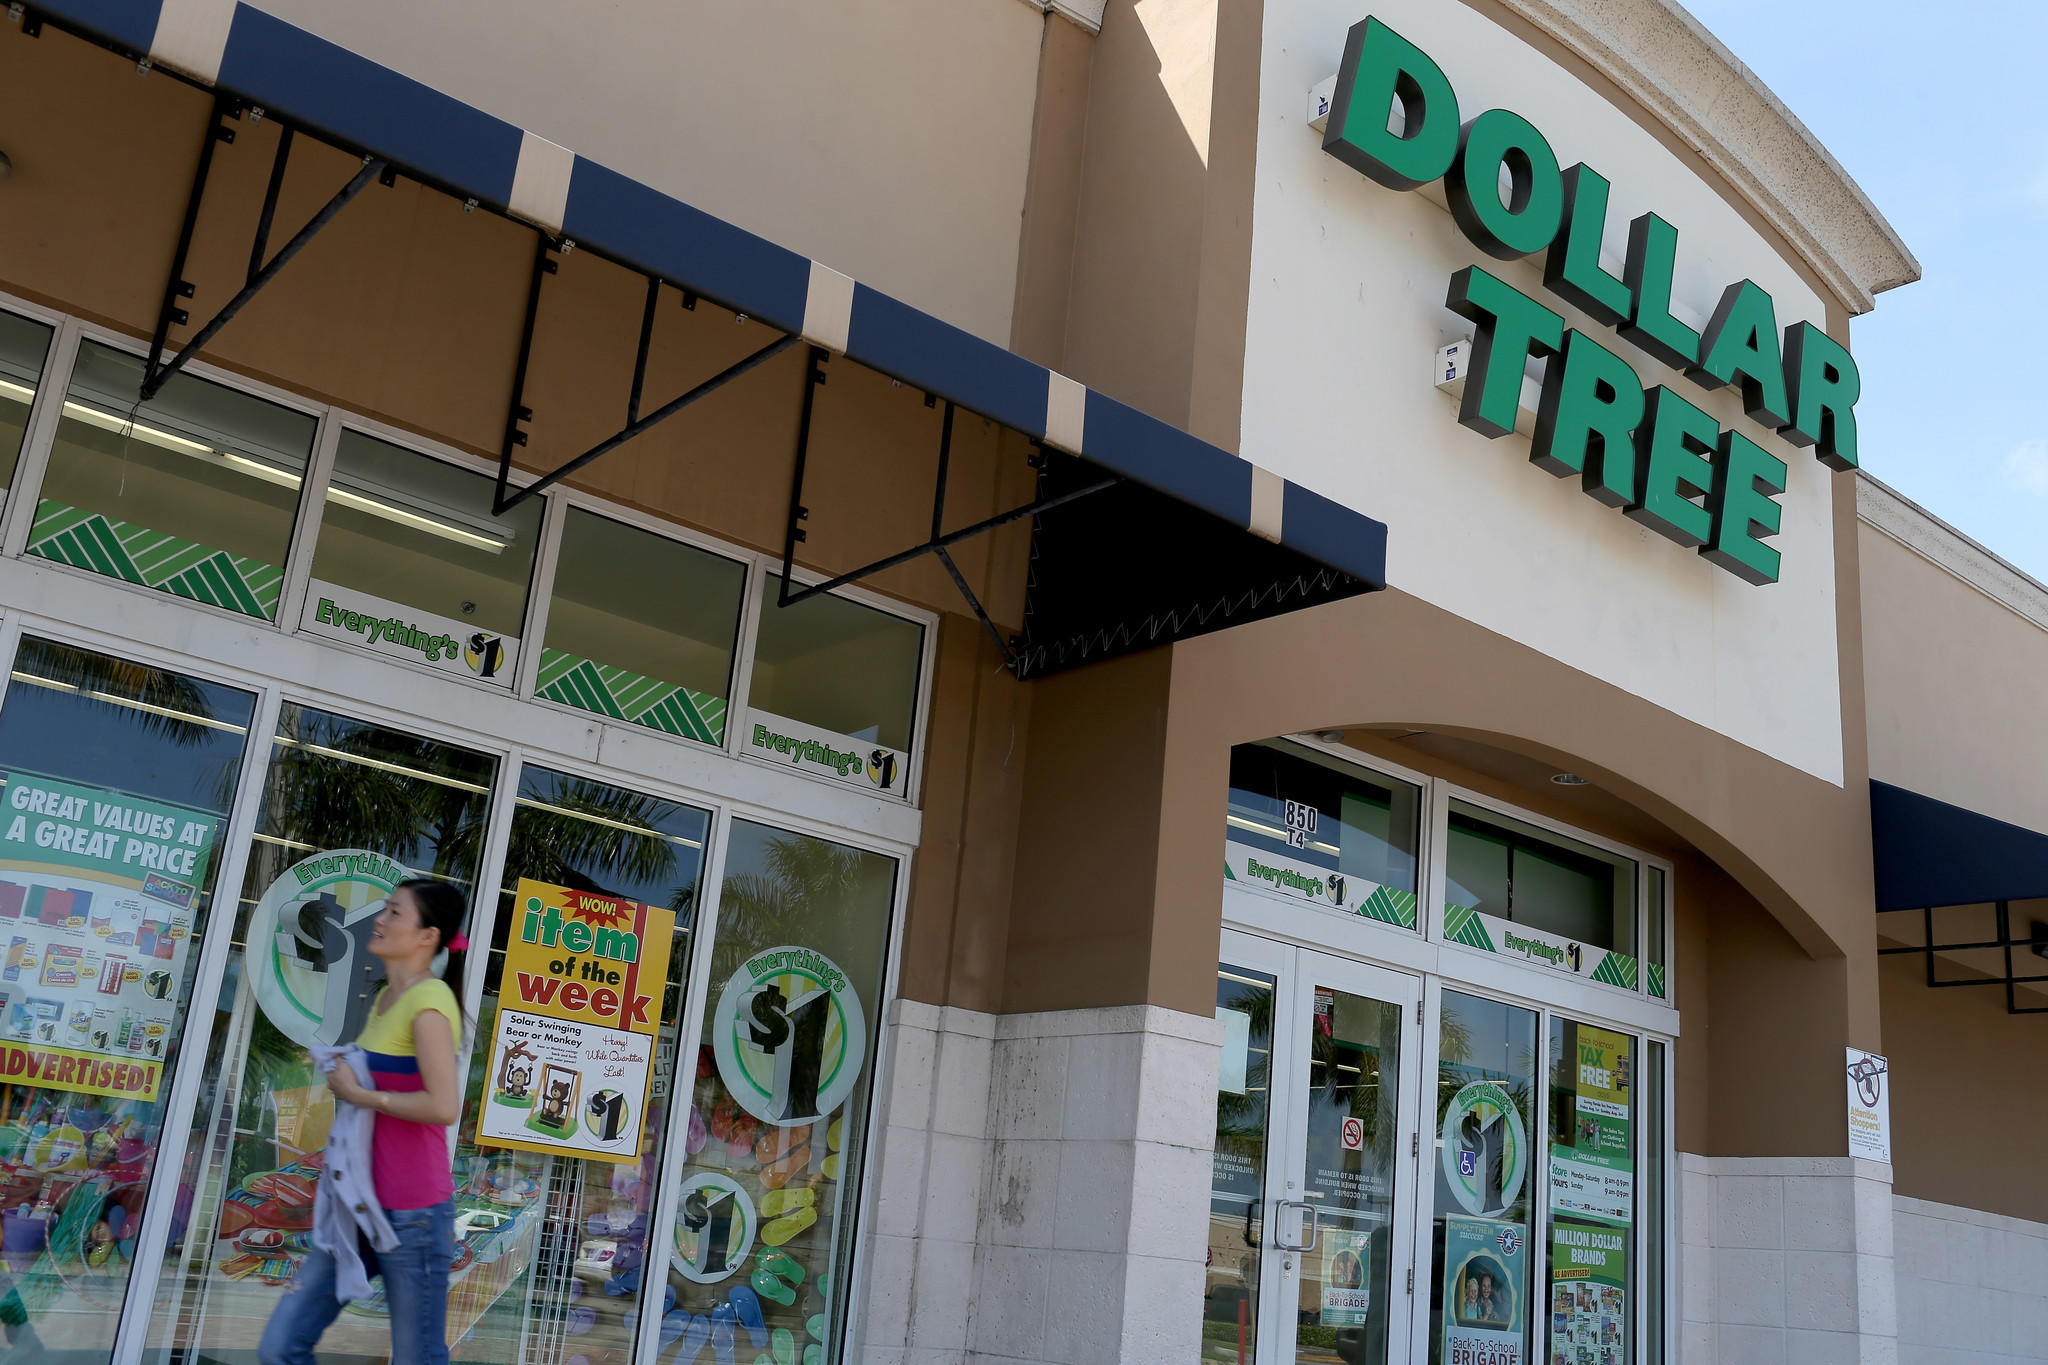 A Dollar Tree store is seen on July 28, 2014 in Miami, Florida. Dollar Tree announced it will buy Family Dollar Stores for about $8.5 billion in cash and stock.